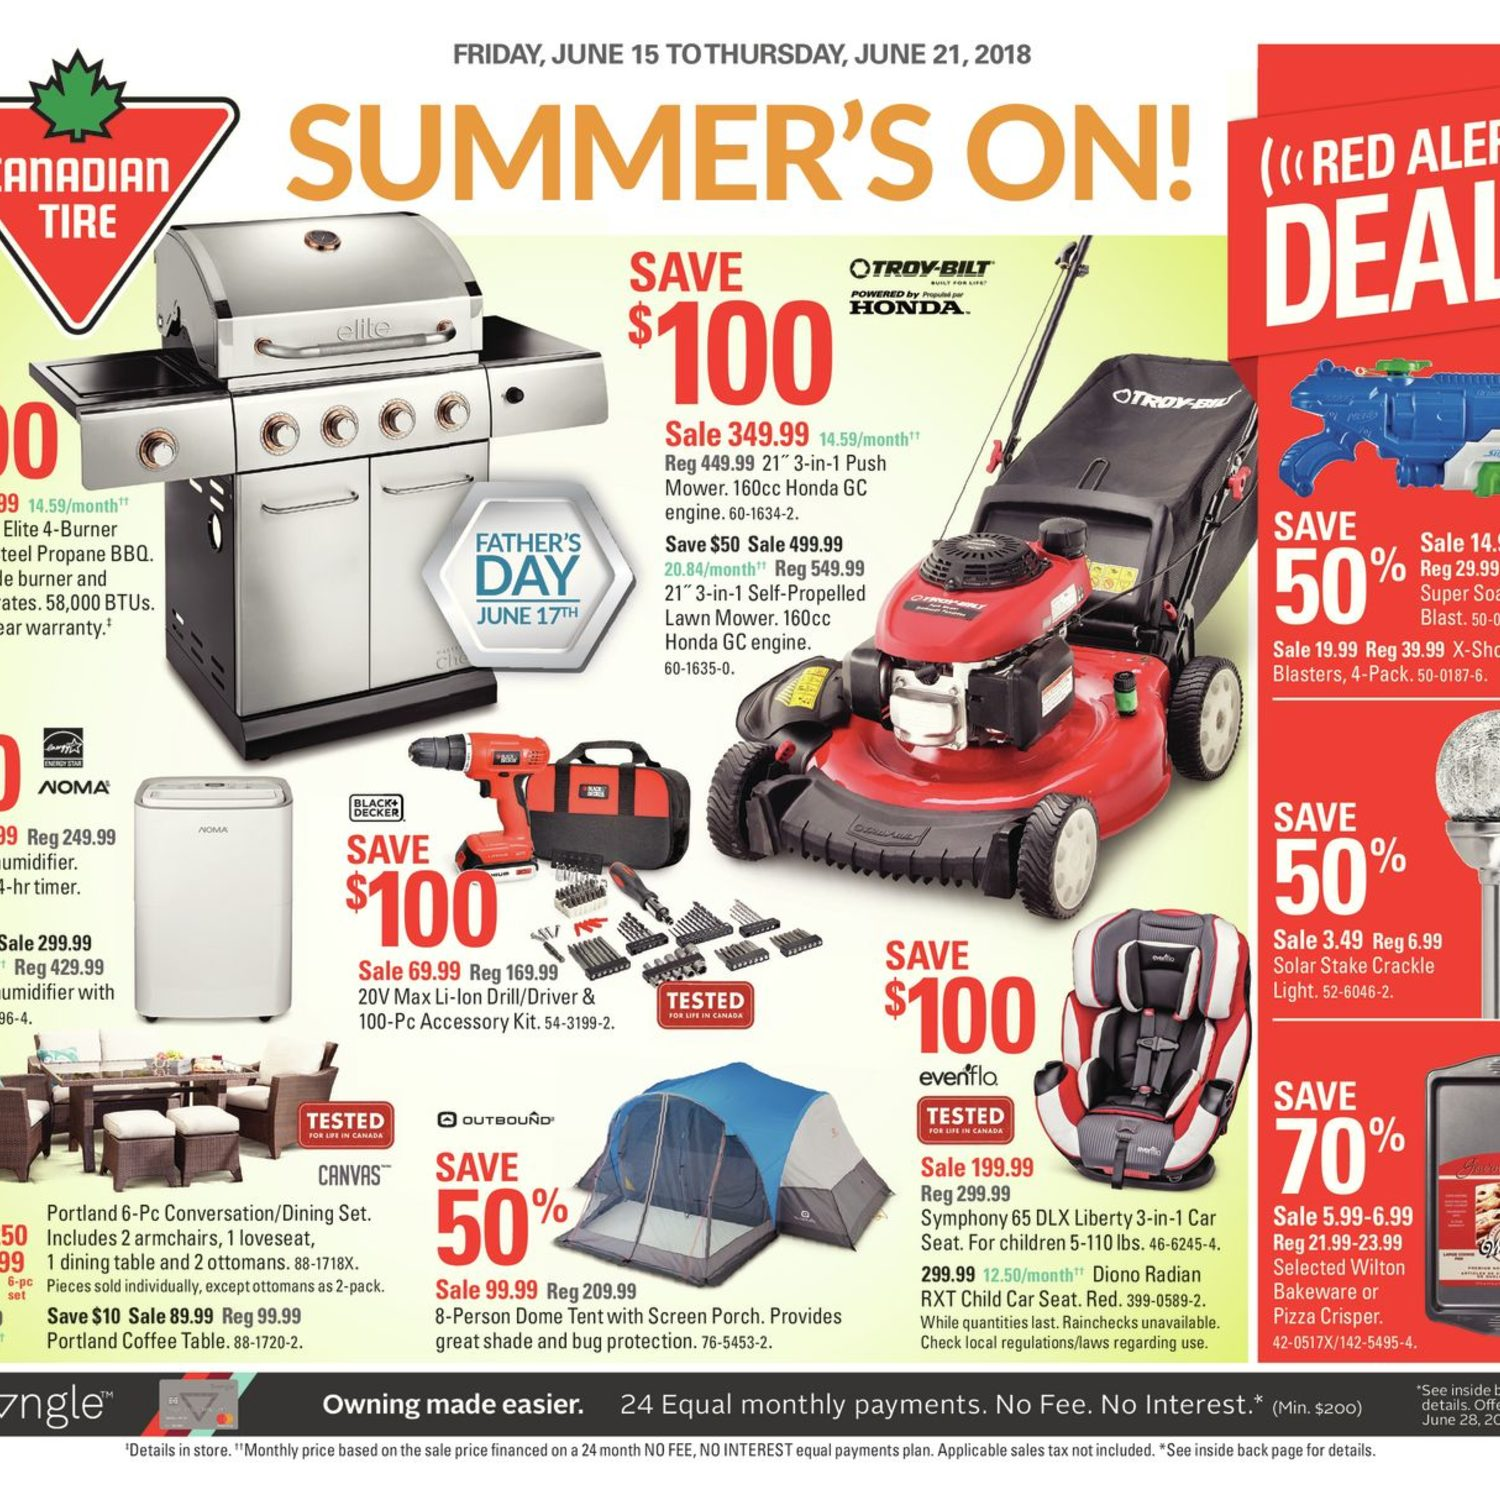 Canadian Tire Weekly Flyer Weekly Summer S On Jun 15